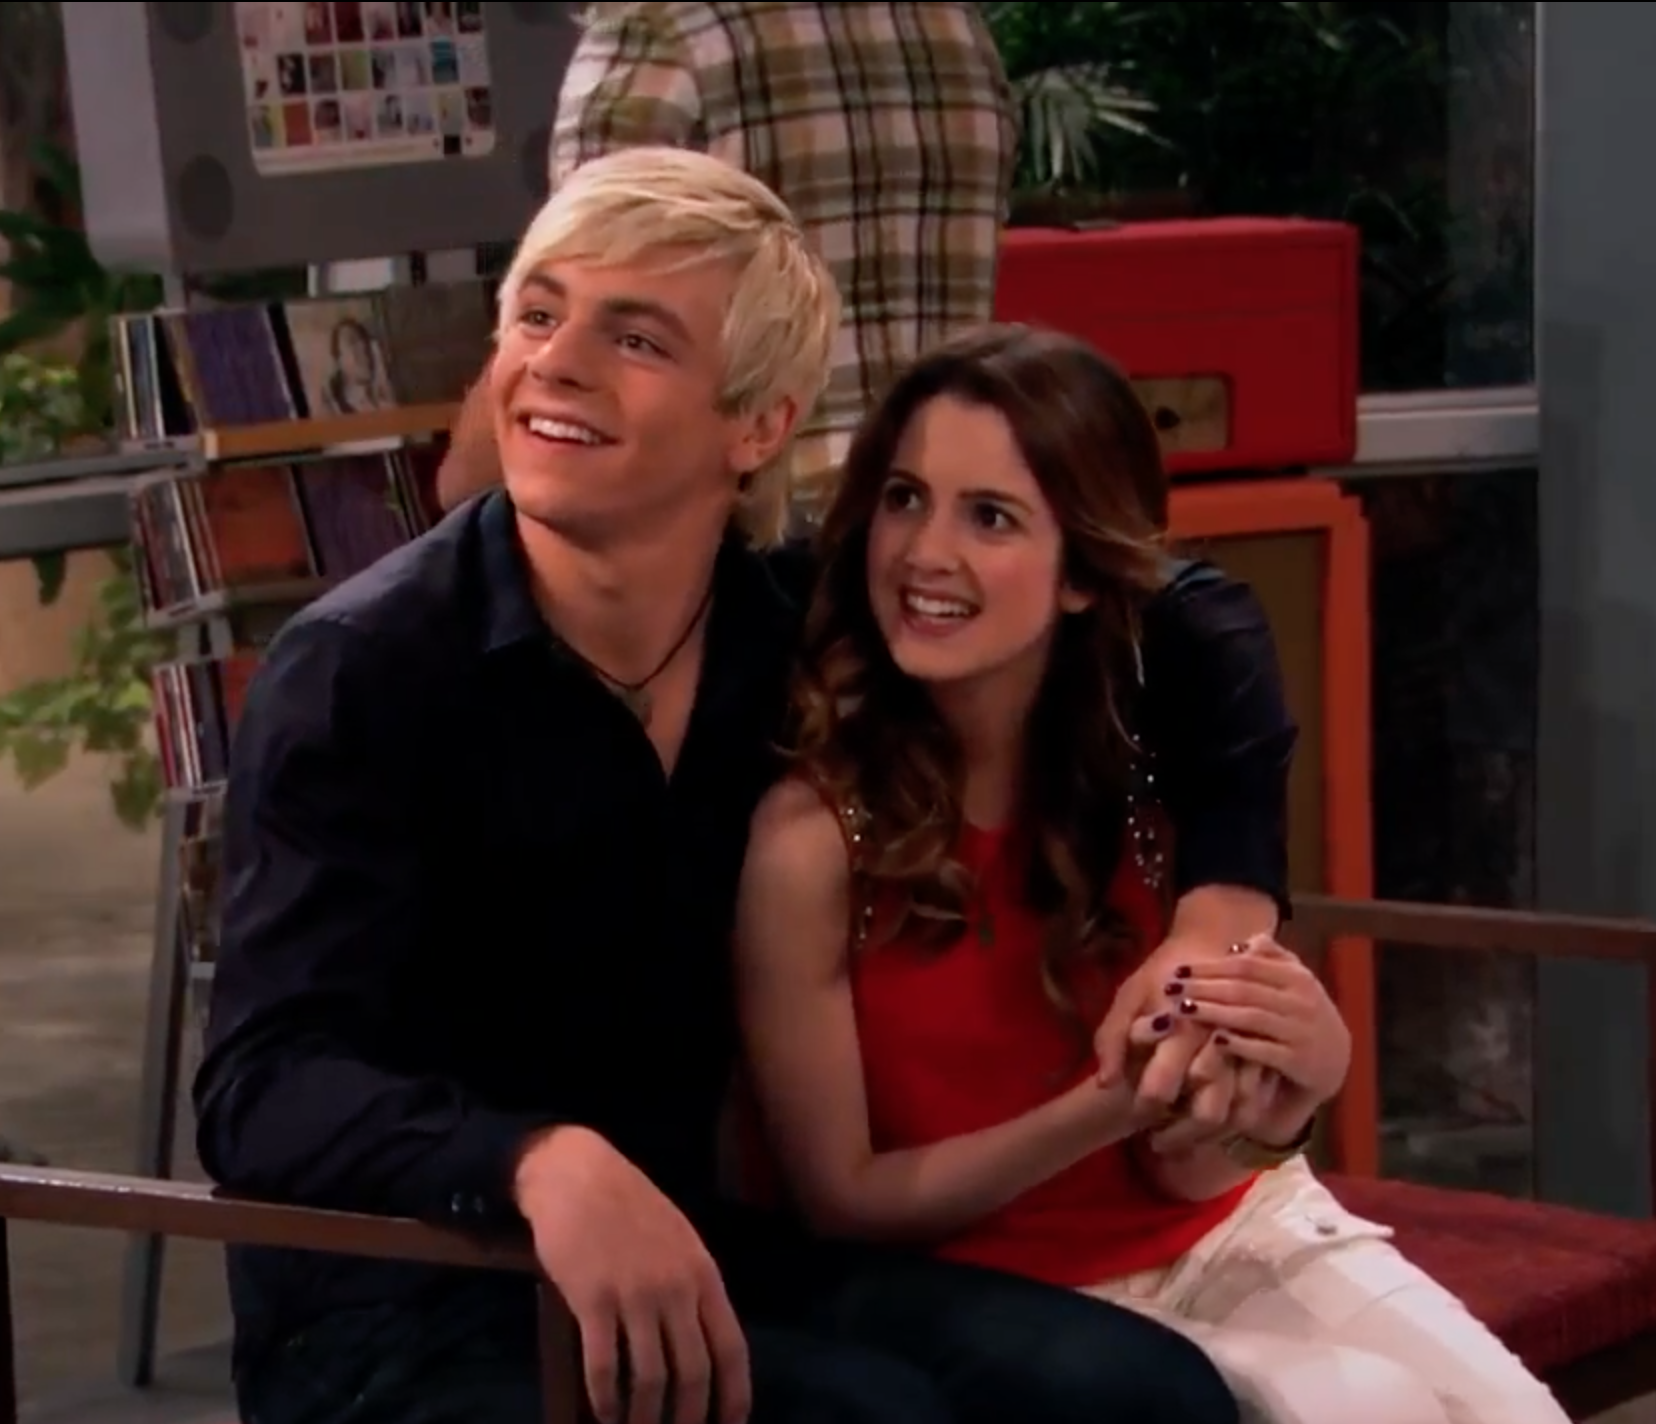 Austin and ally fanfic secretly hookup